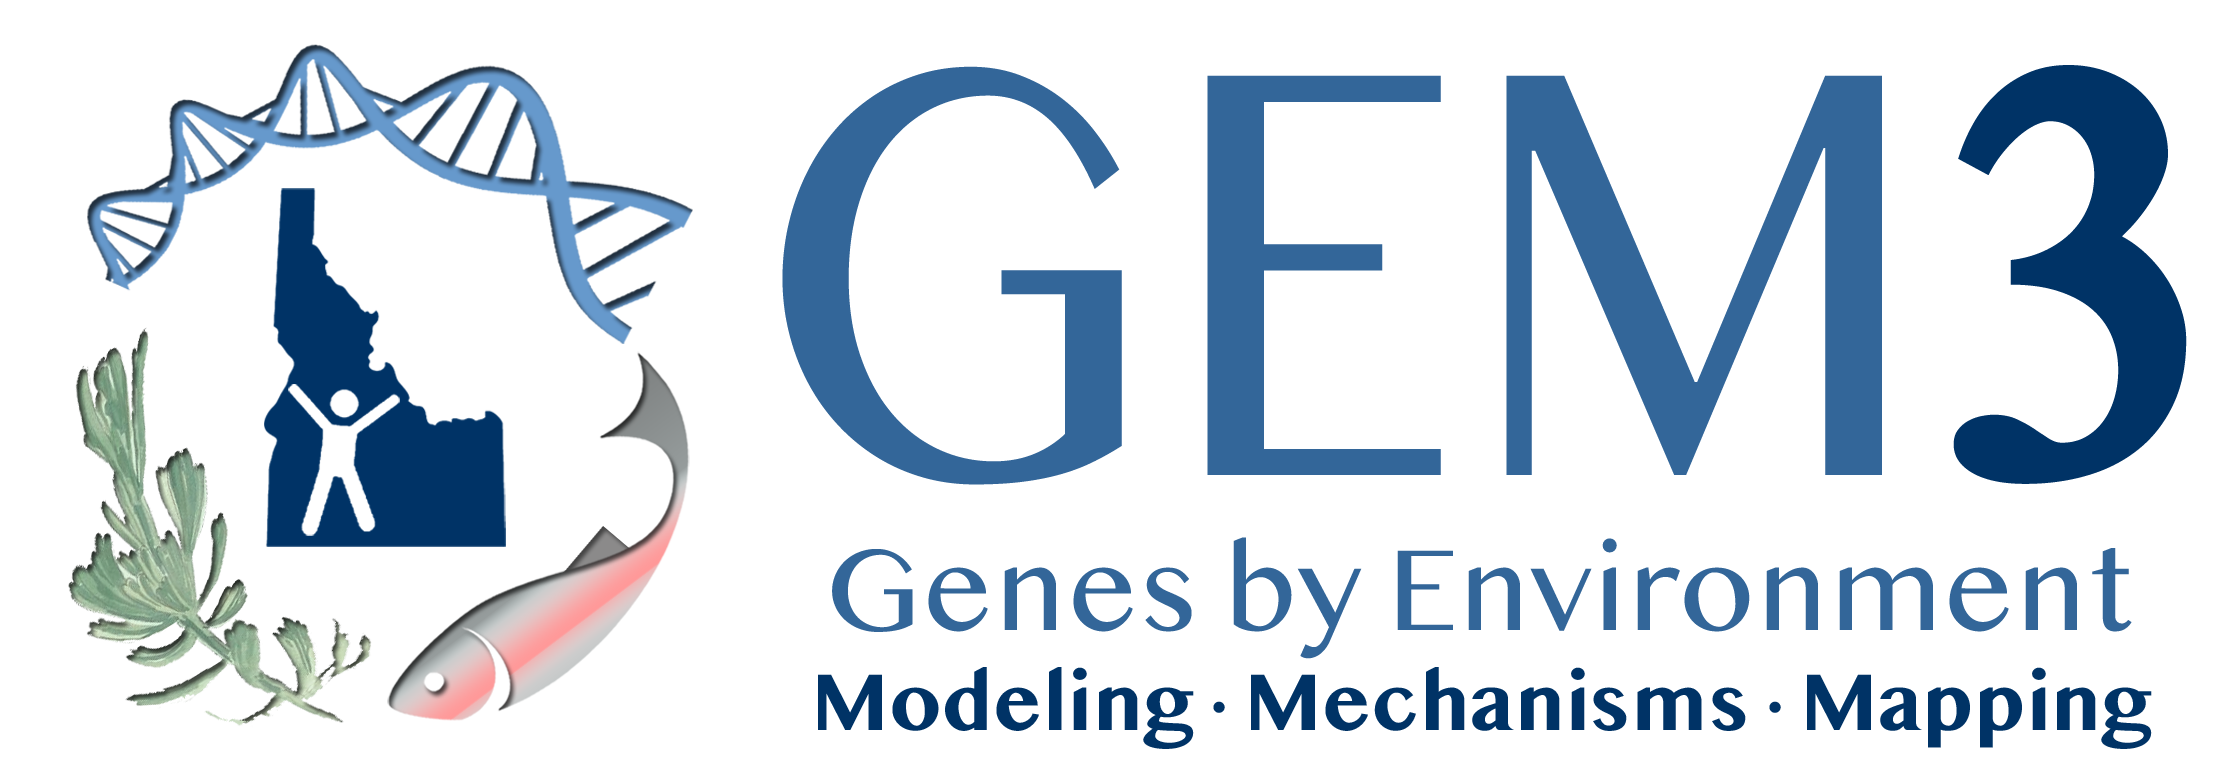 GEM3, Genes by environment, Modeling, Mechanisms, Mapping - logo